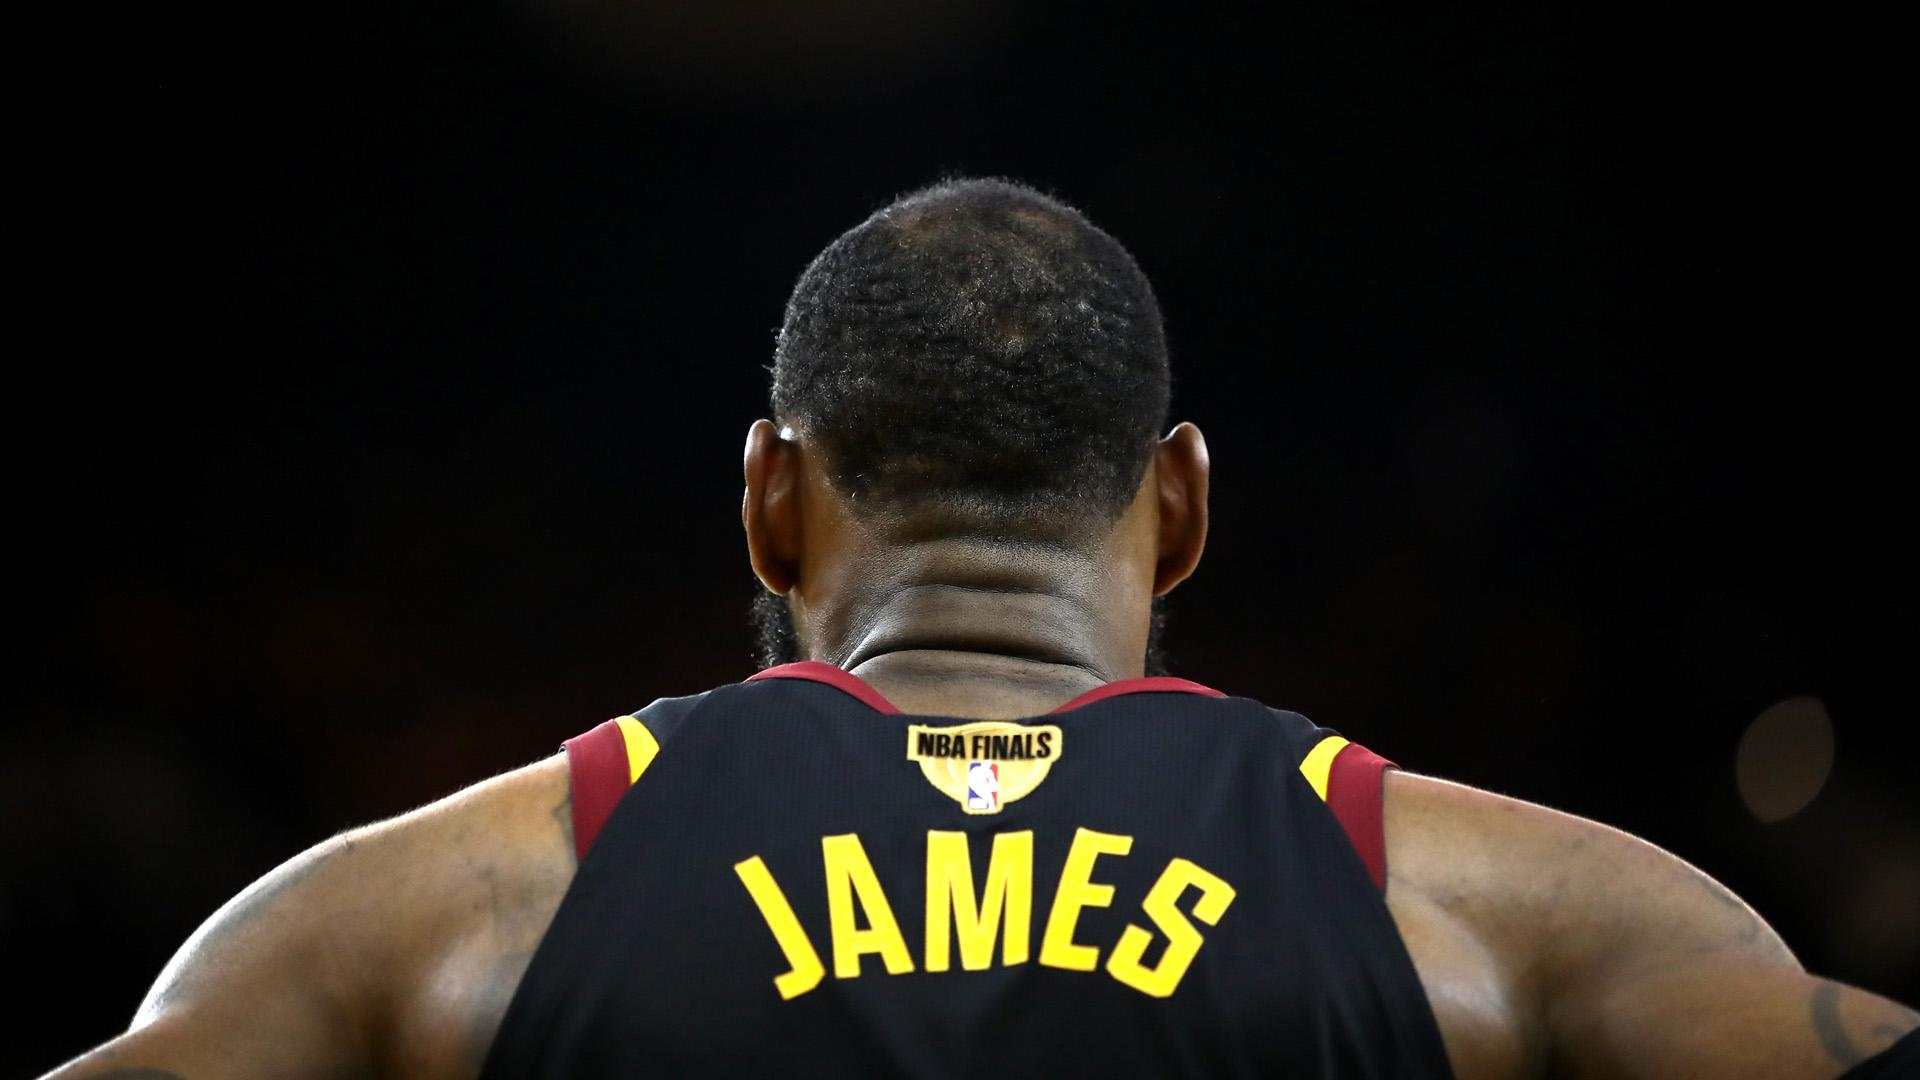 NBA Finals: LeBron James sweepstakes begin as soon as Game 4 ends